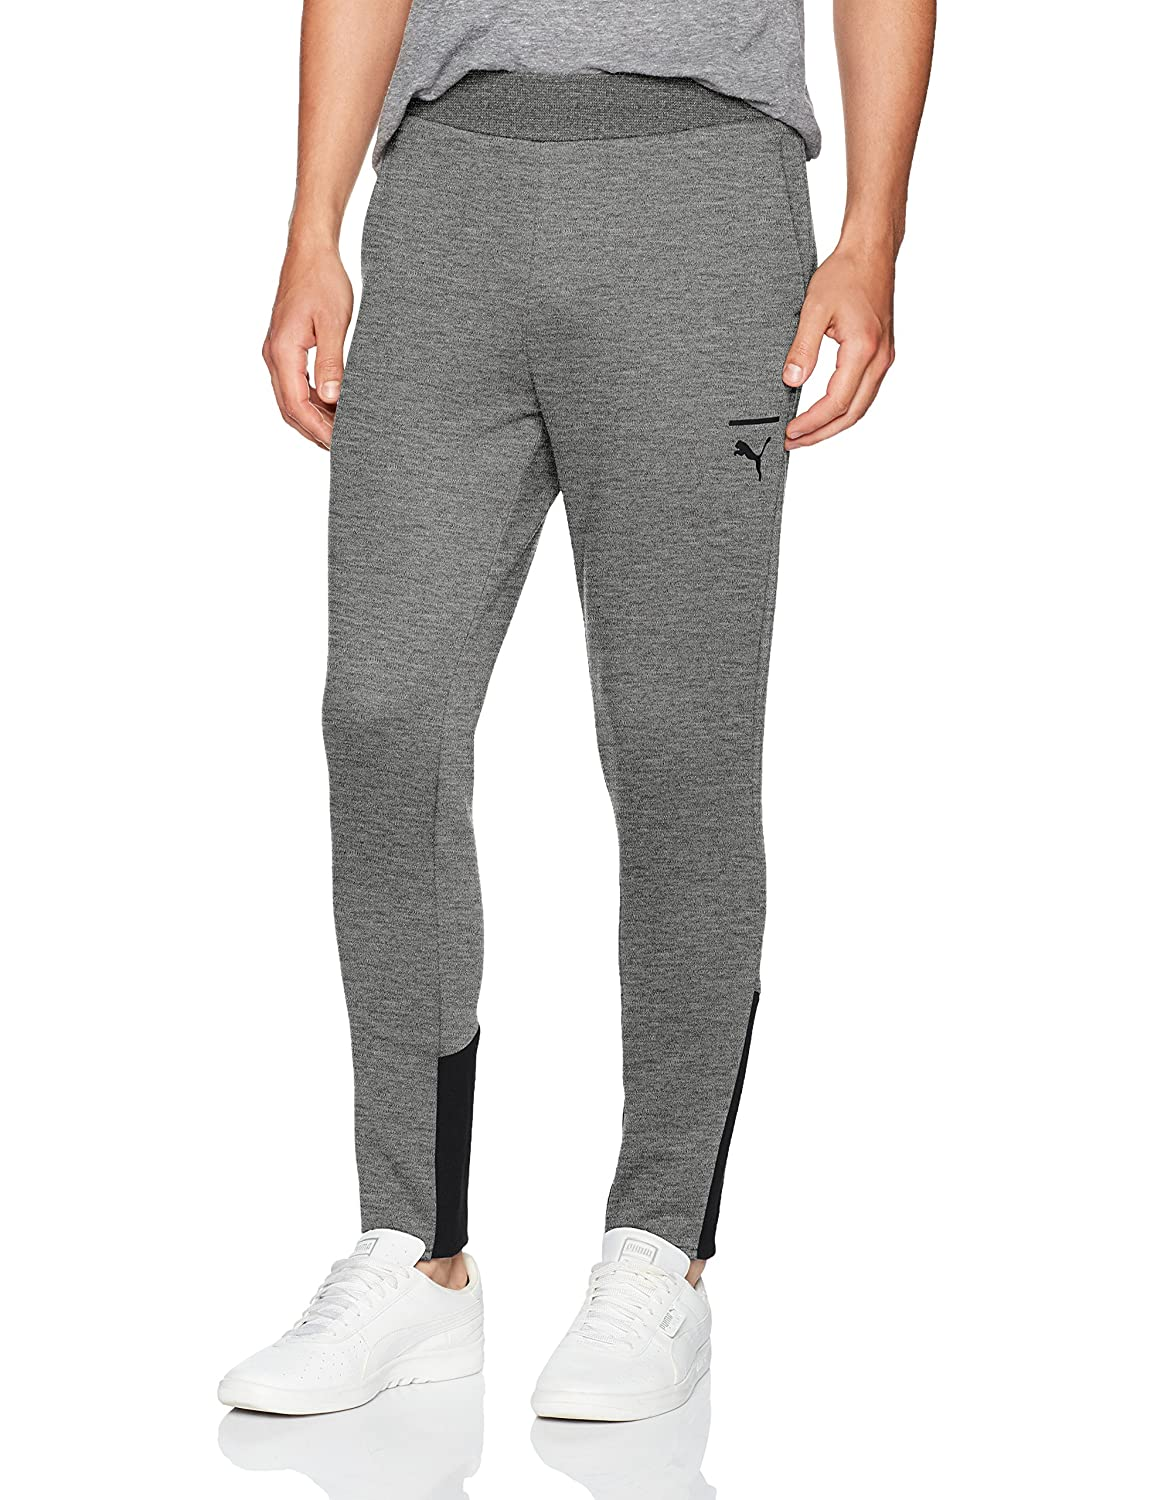 PUMA mens Evo Core Athleisure Pants Puma Men' s Athletic